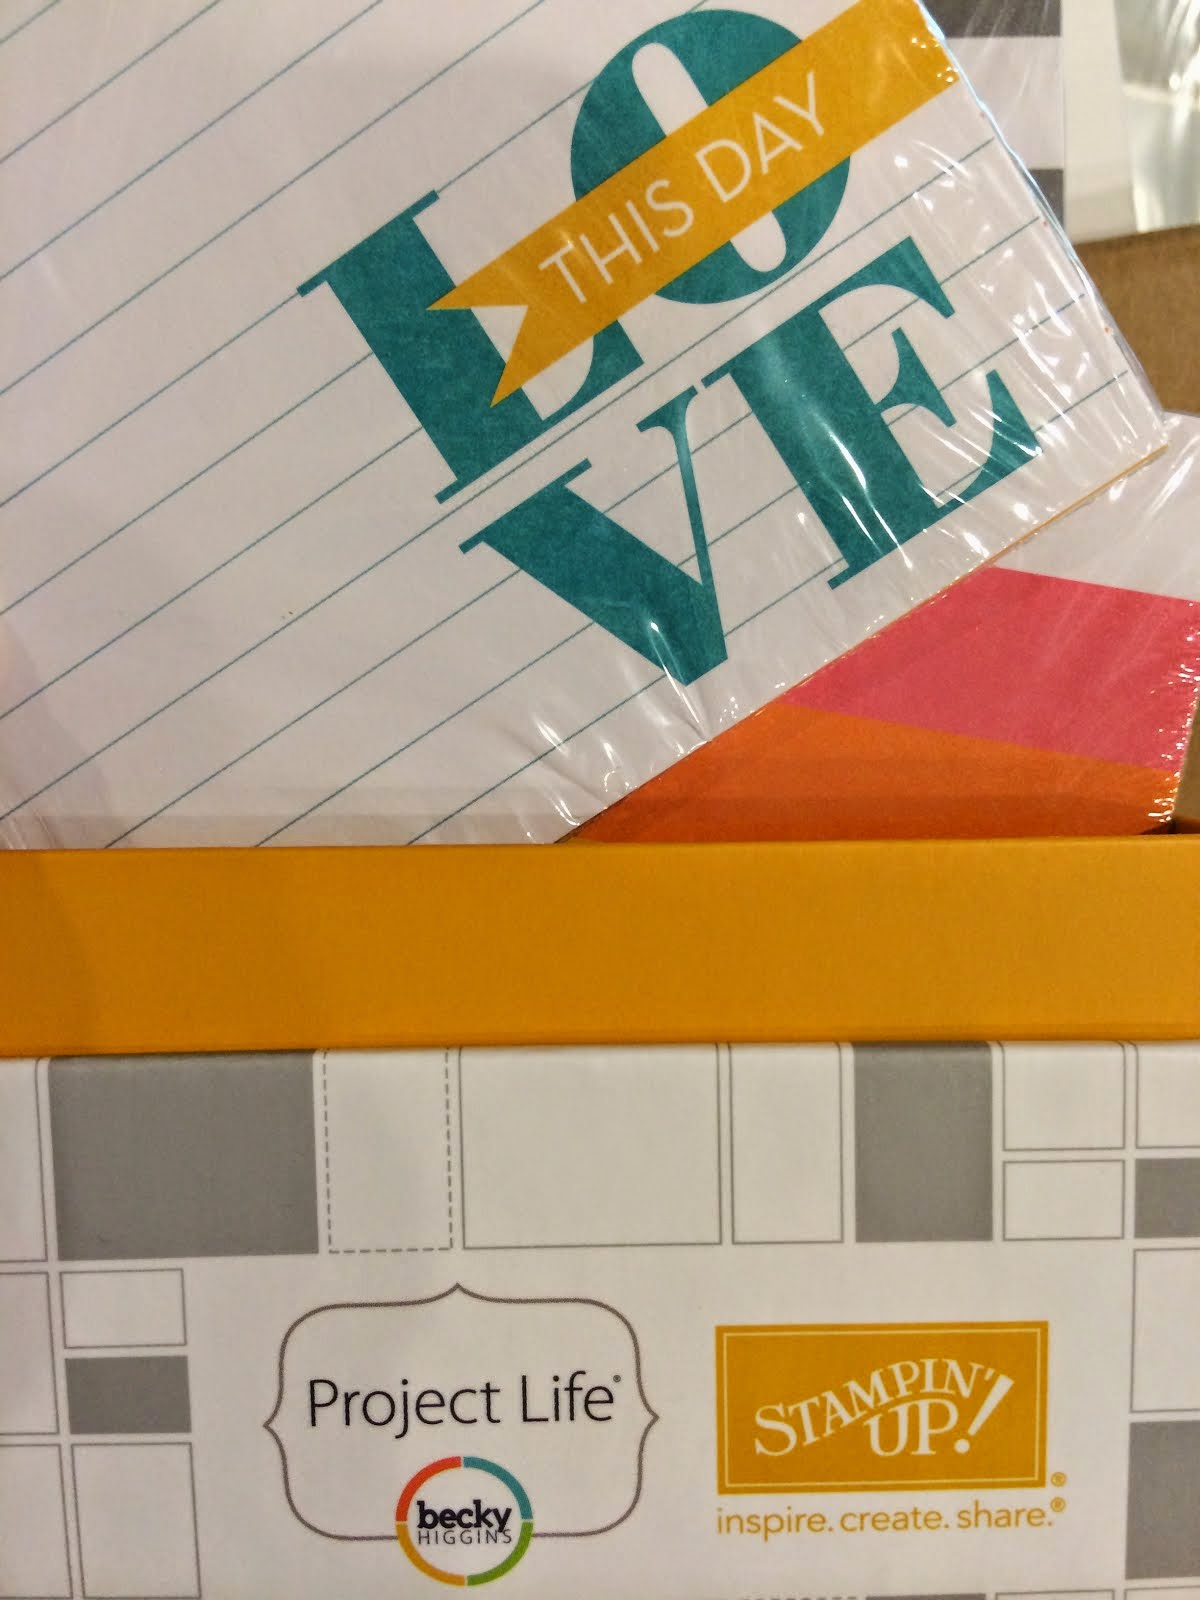 Project Life & Stampin' Up!